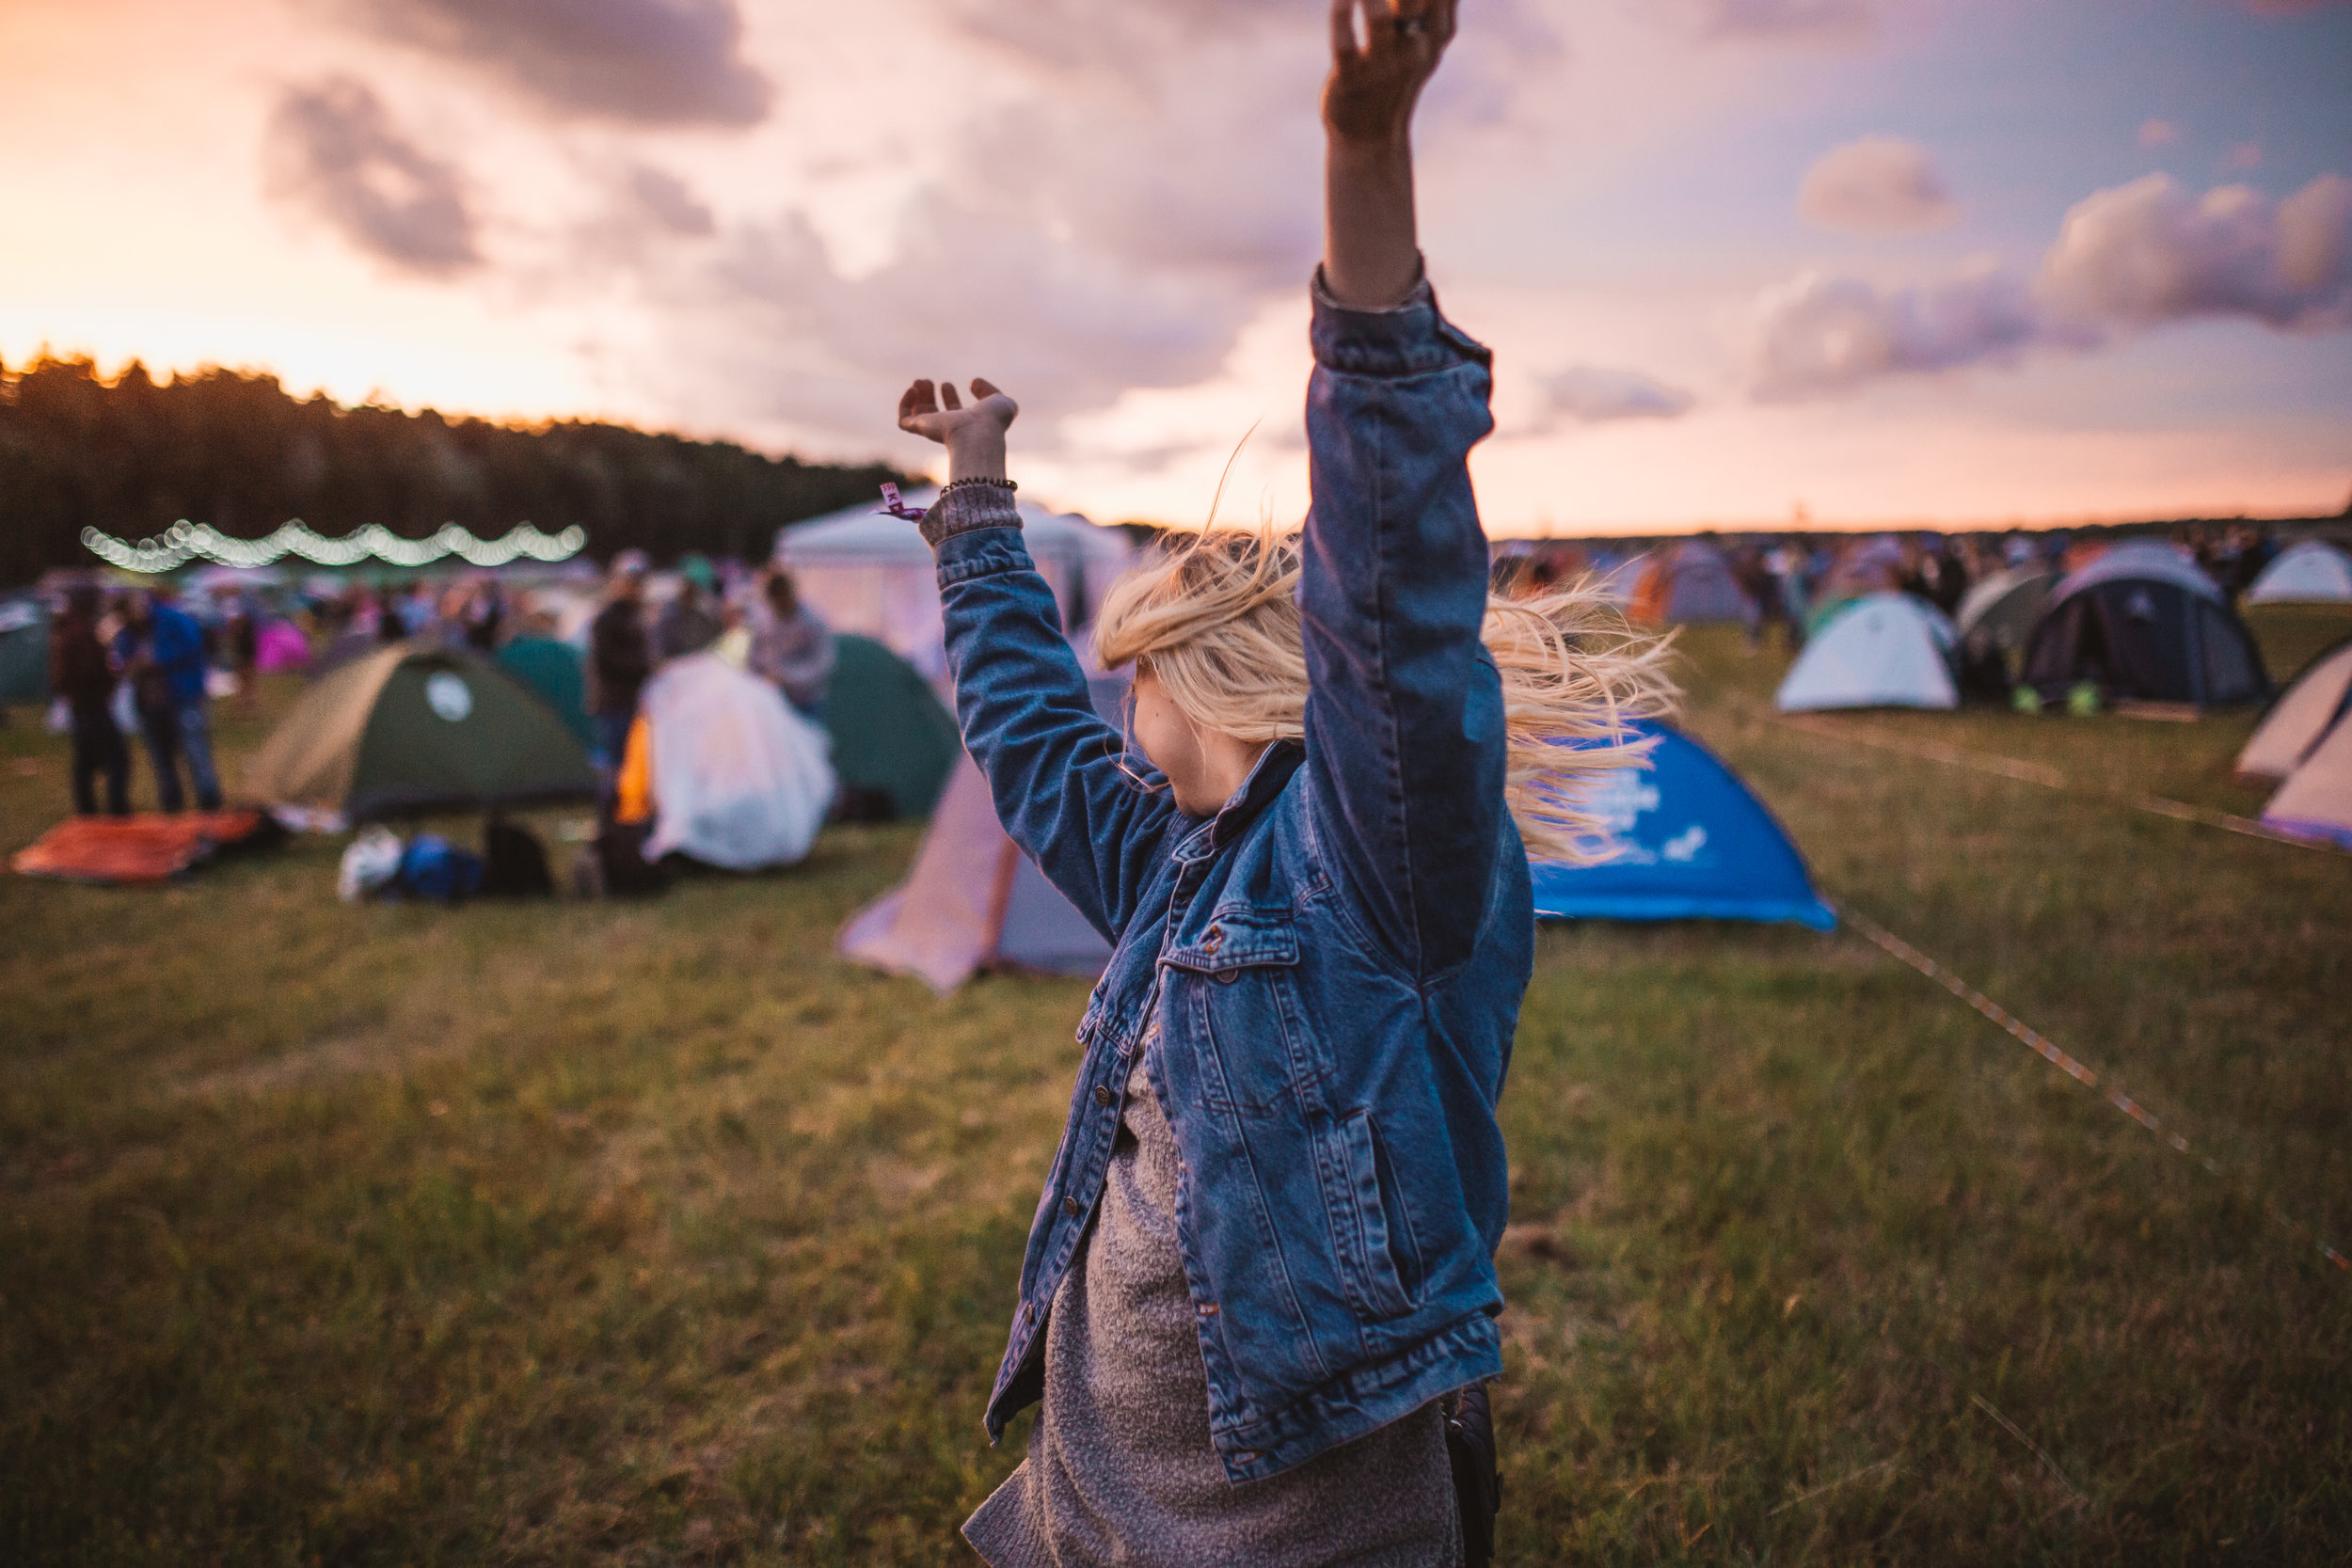 Festival Need-To-Know - Updates, interviews, advice, and more regarding your favorite festivals.